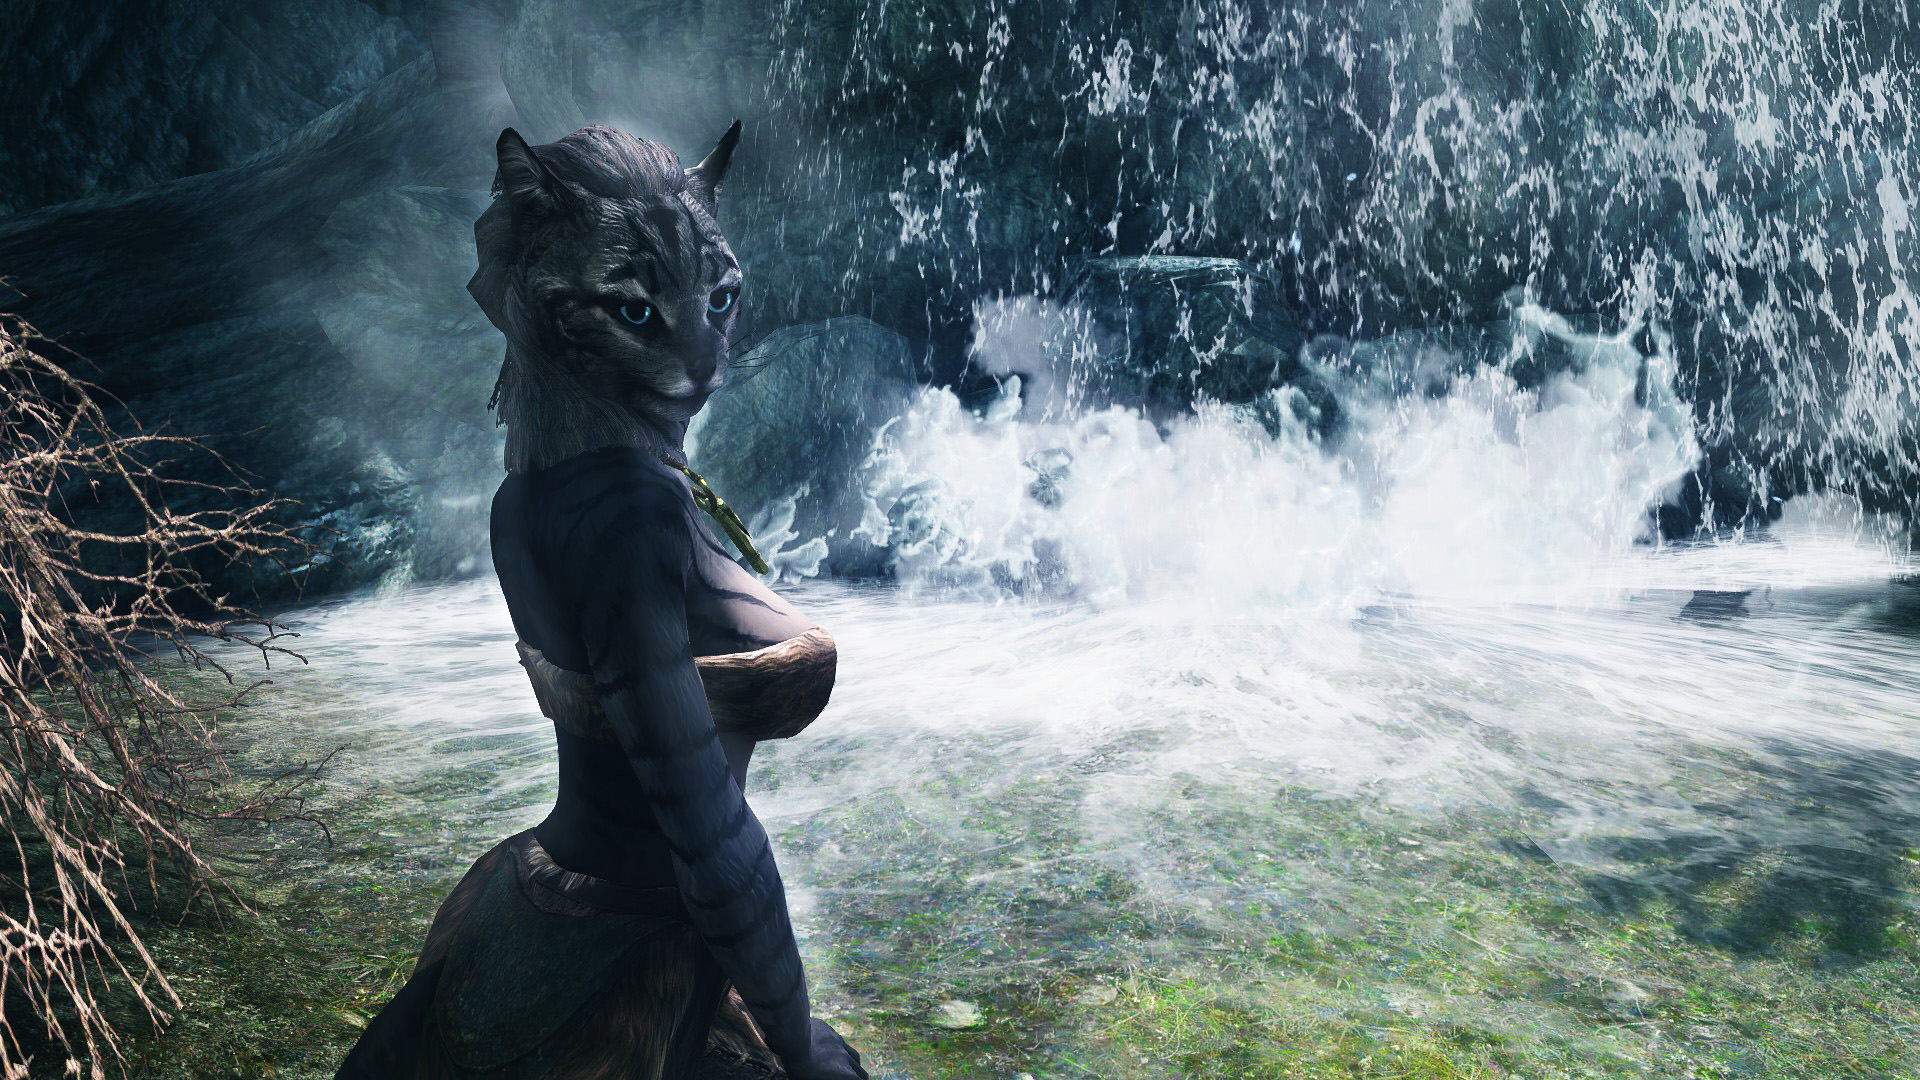 For those of you who lament that Skyrims Khajiit are not cute 1920x1080